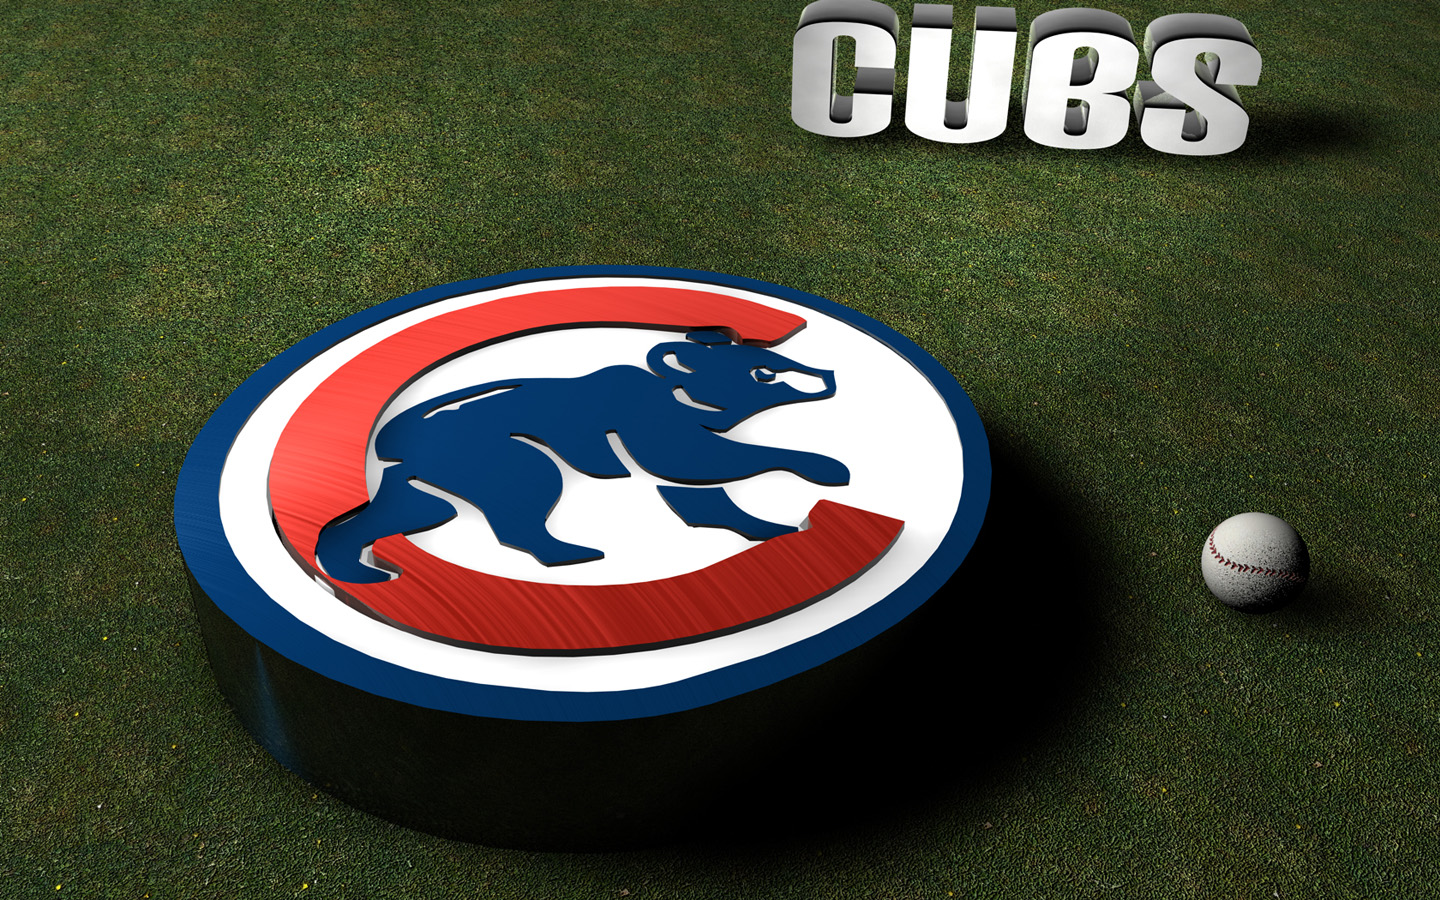 Chicago Cubs 1440x900